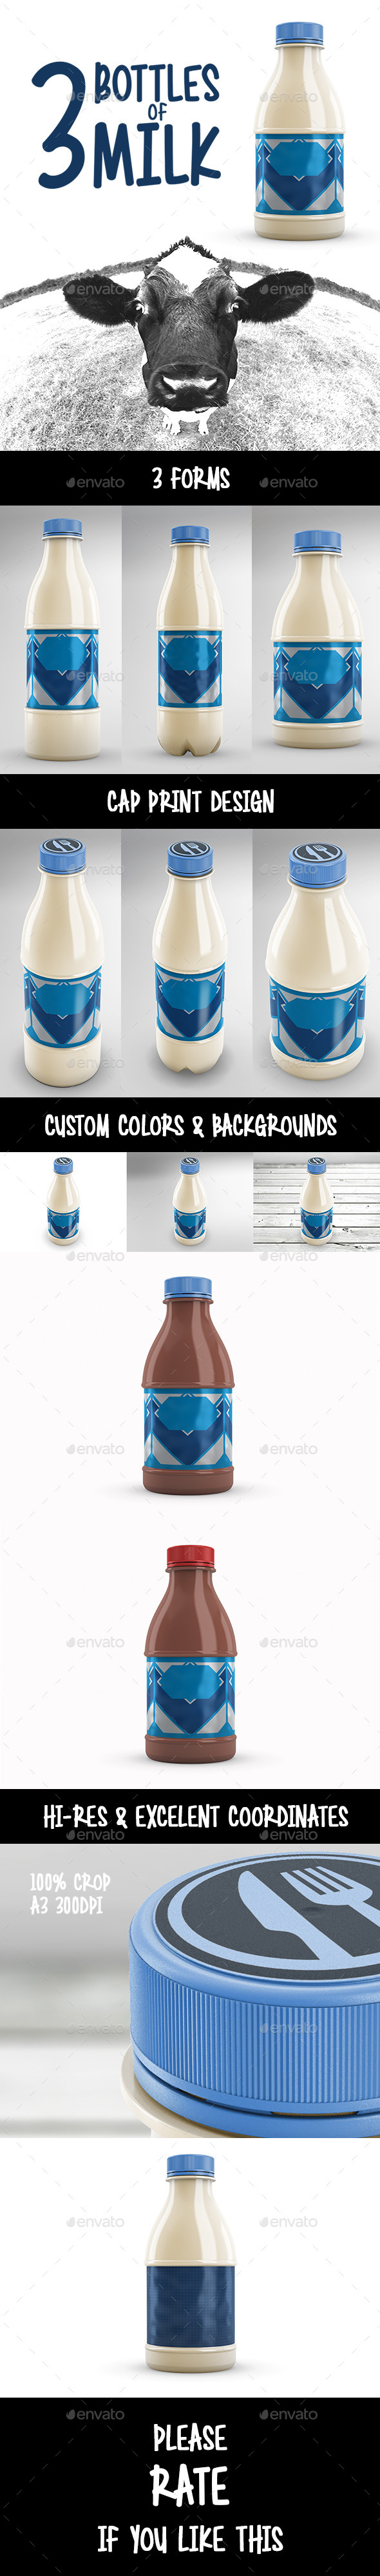 GraphicRiver Bottles of Milk 11409486